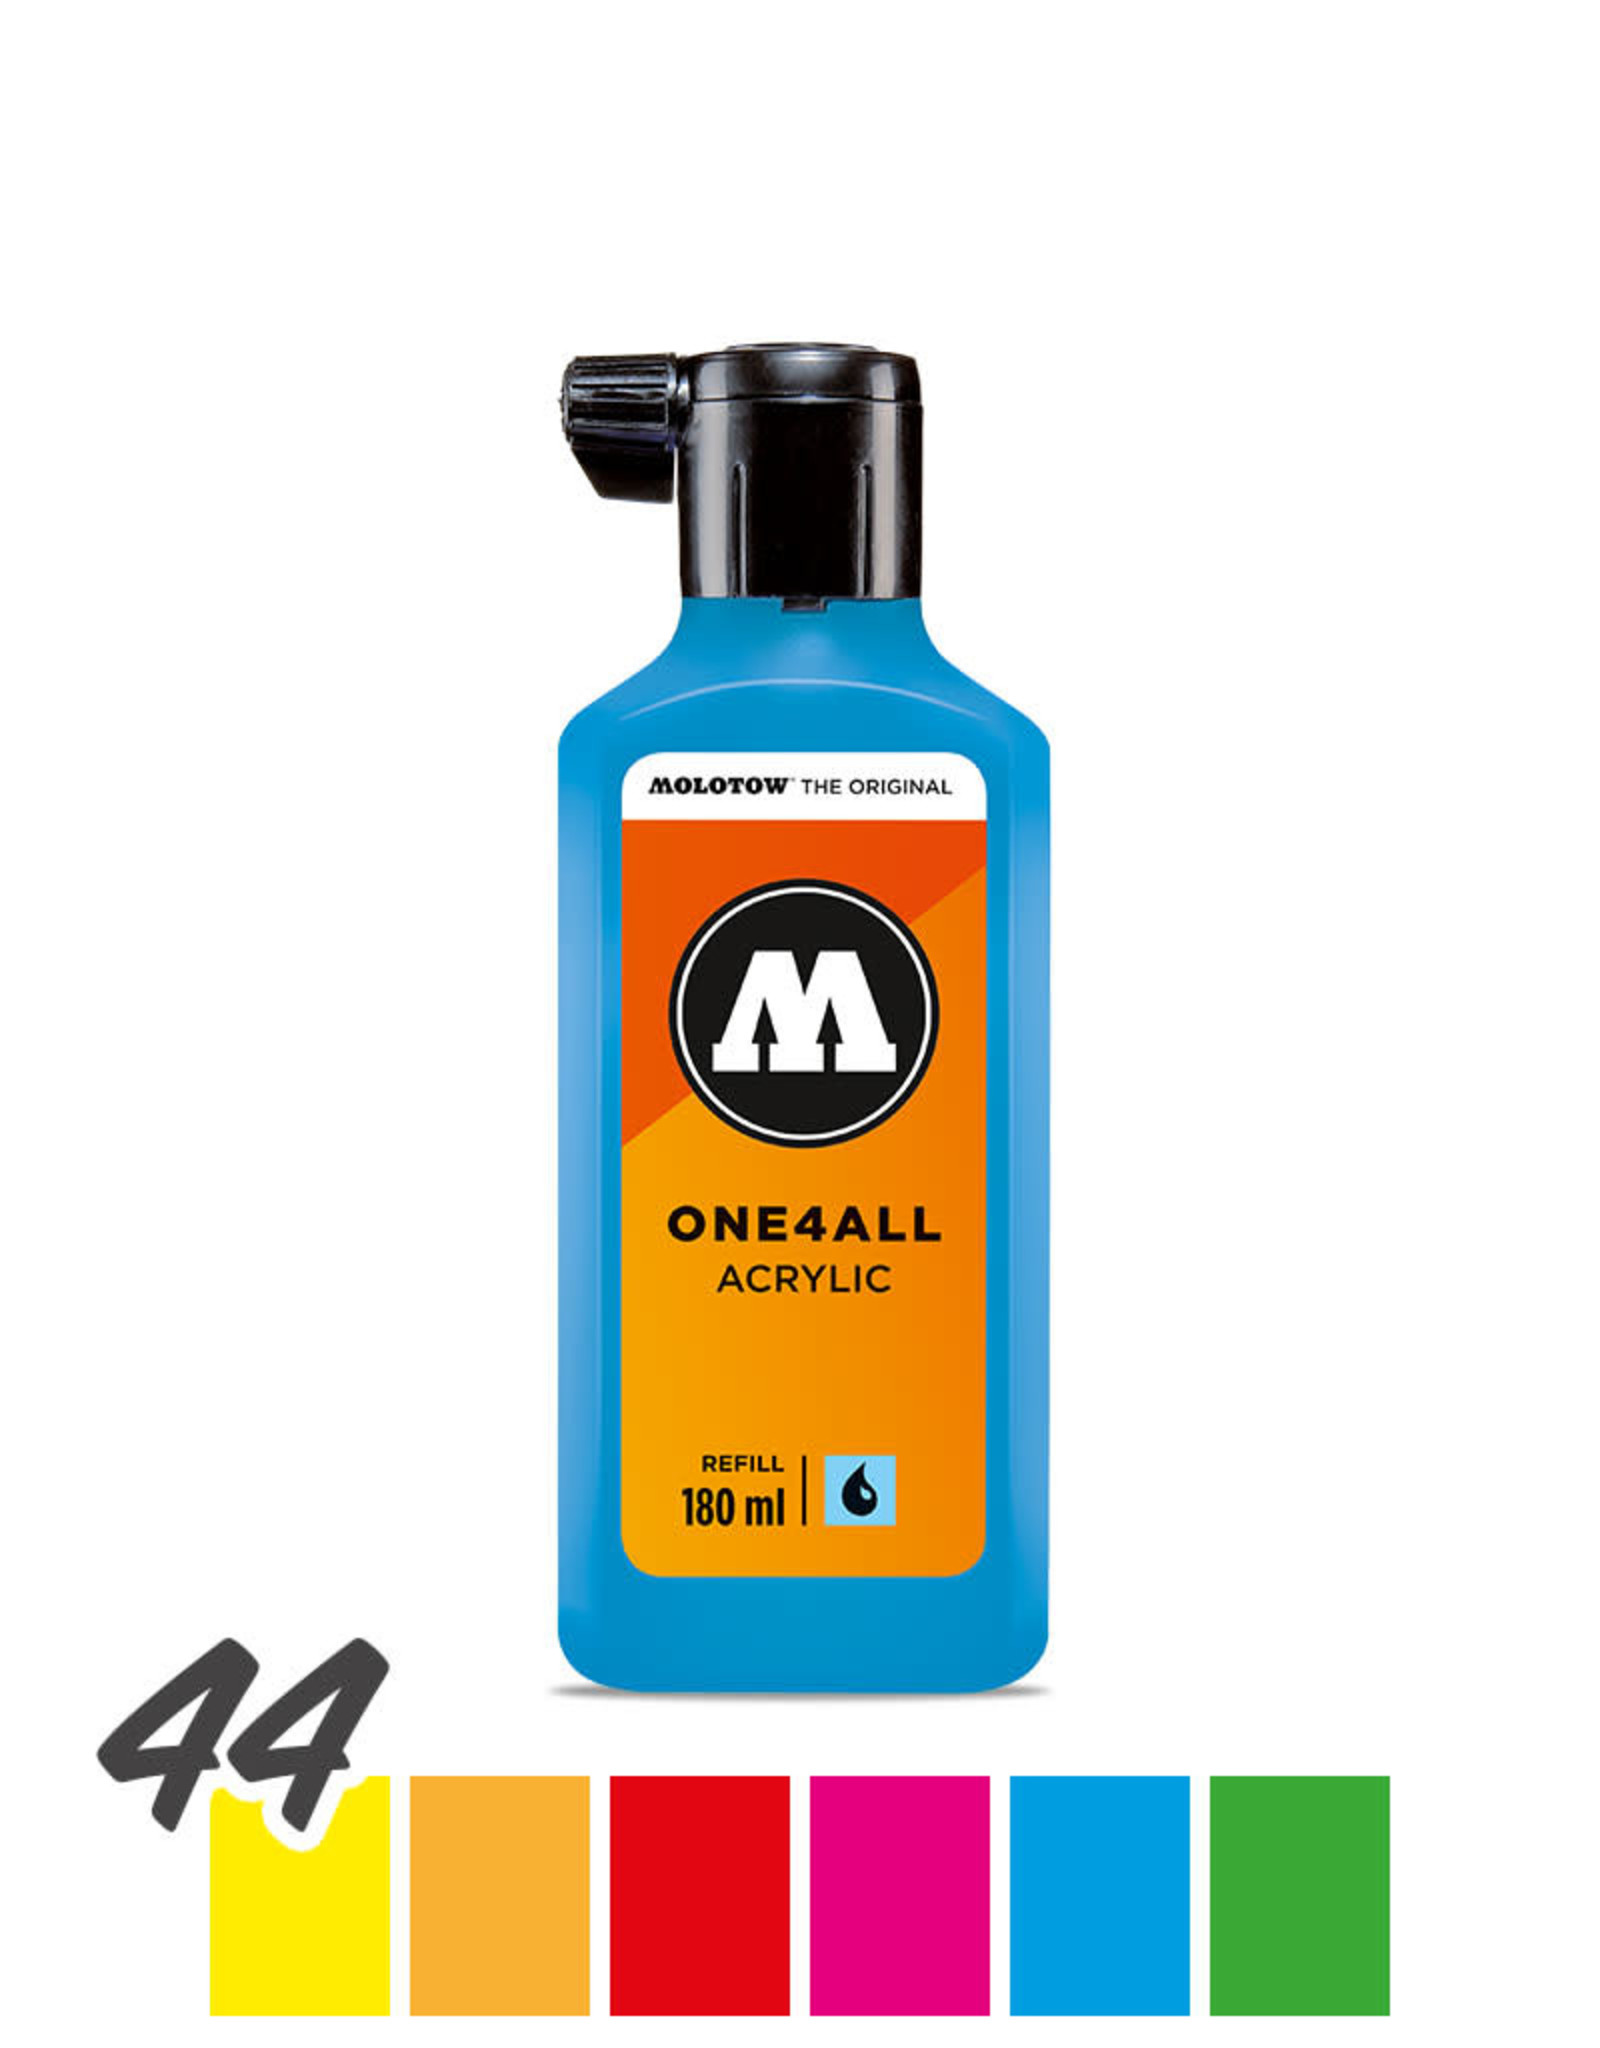 MOLOTOW MOLOTOW ONE4ALL Refill 180 ml